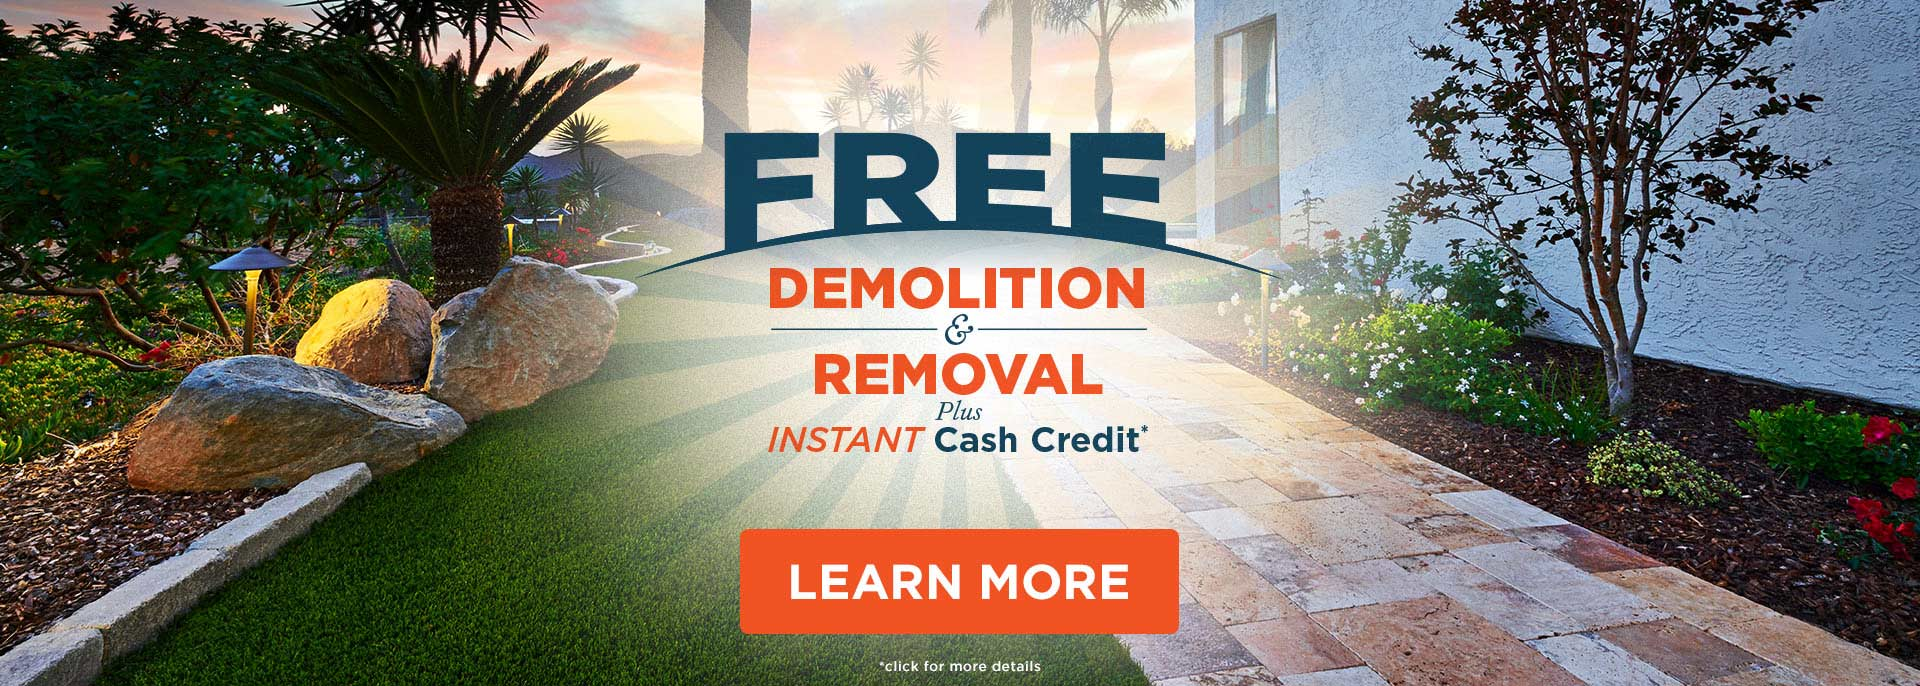 Free Demolition and Removal